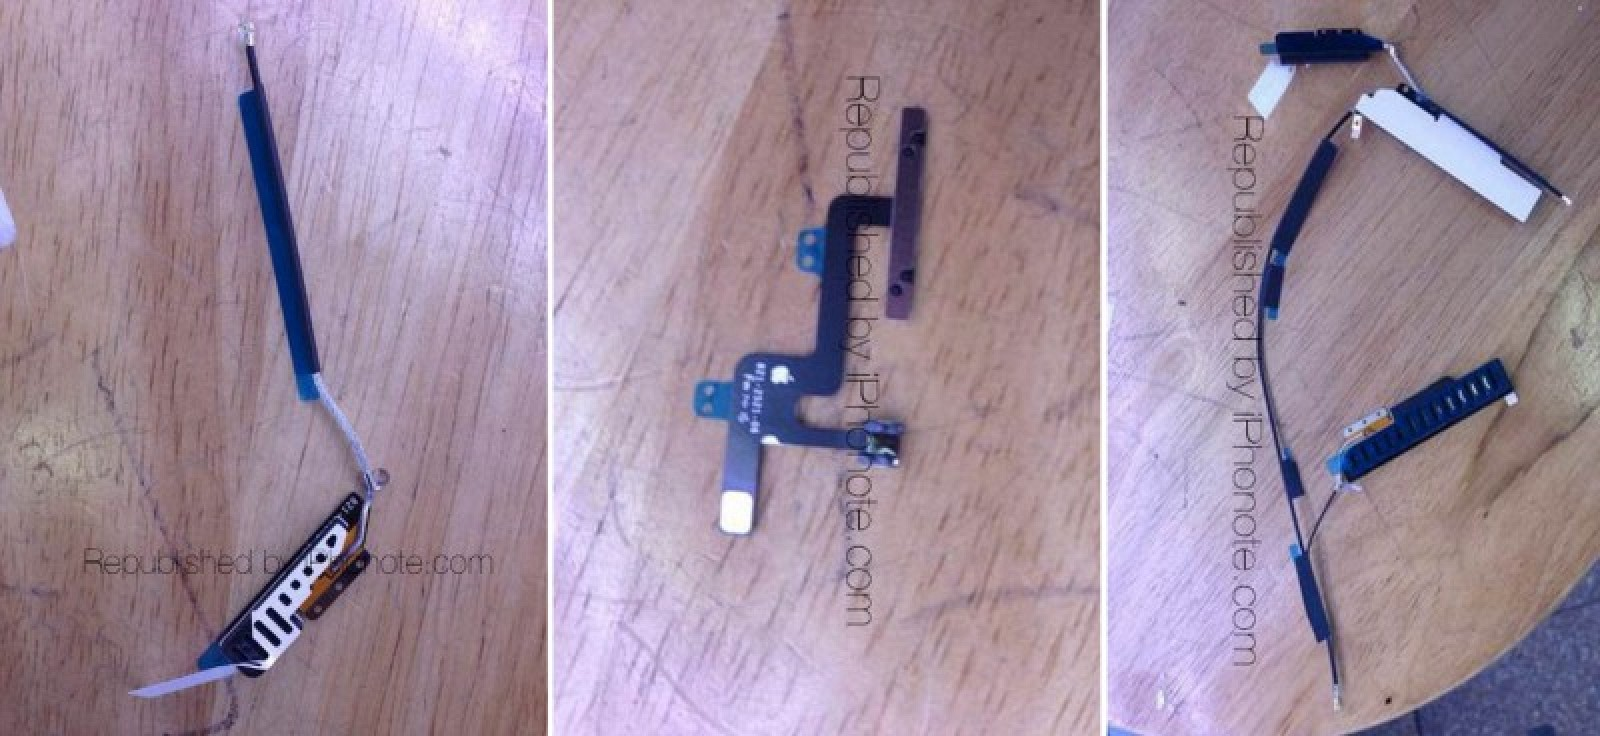 New Photos Claim to Show Various Internal Parts from iPad ...